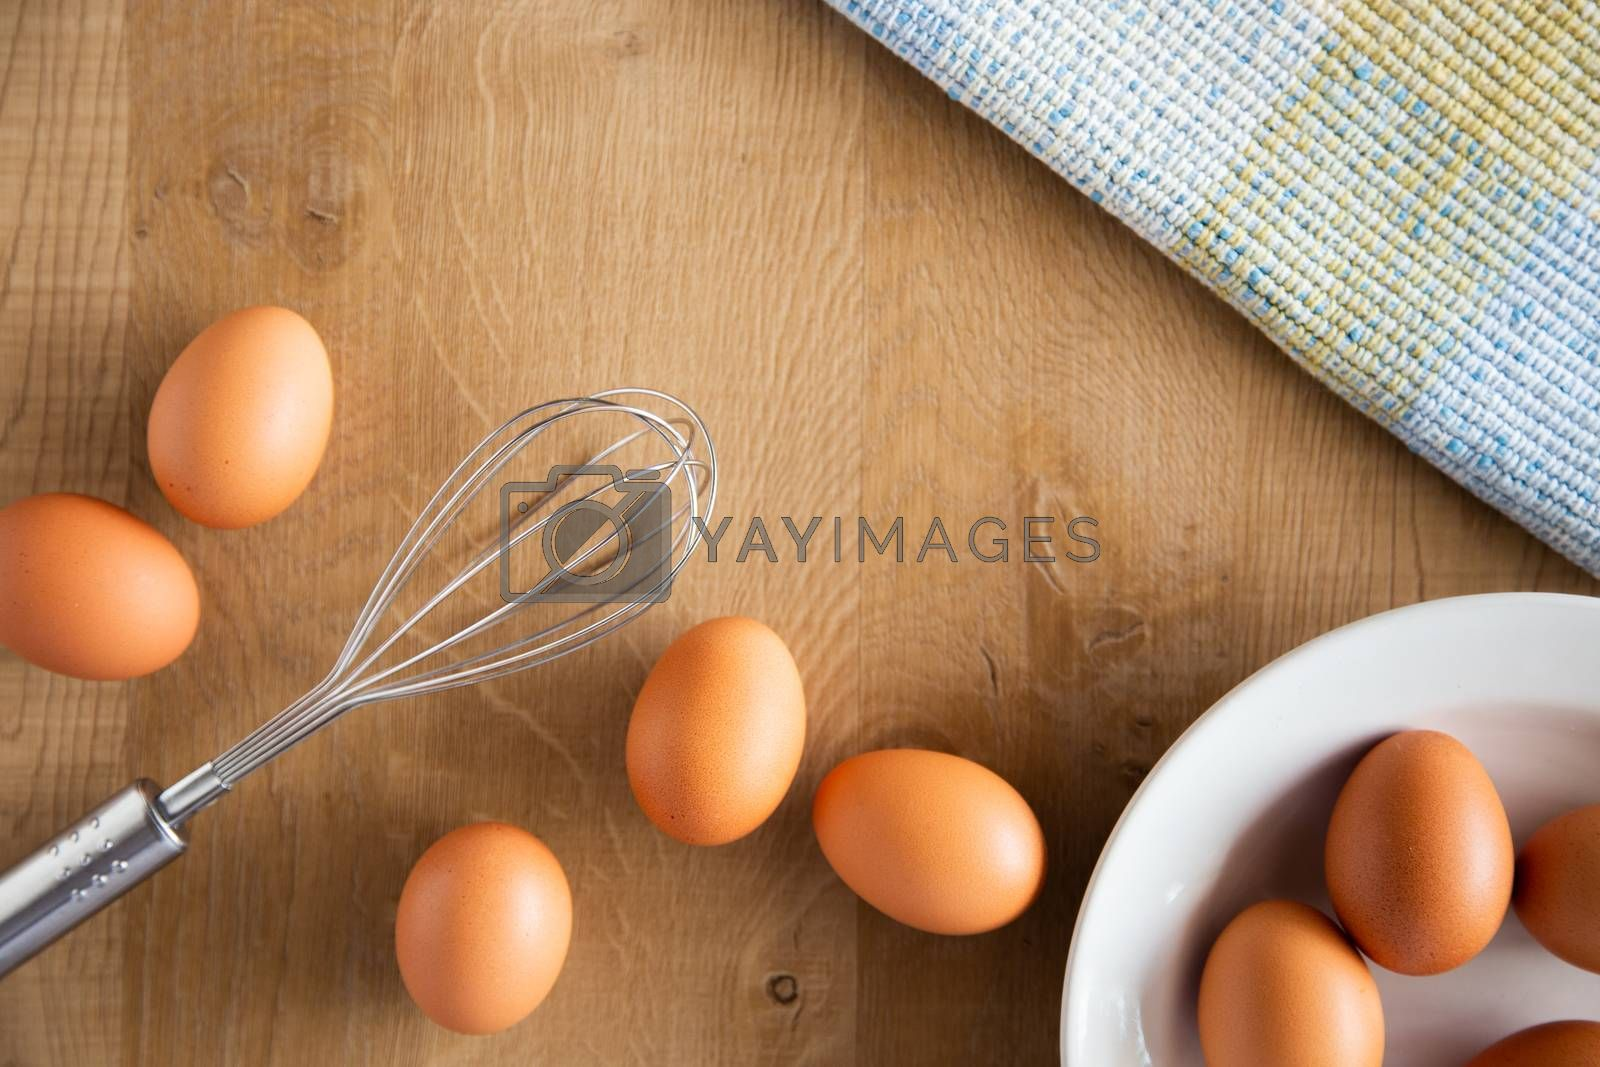 Chicken eggs and egg beater on wooden background.